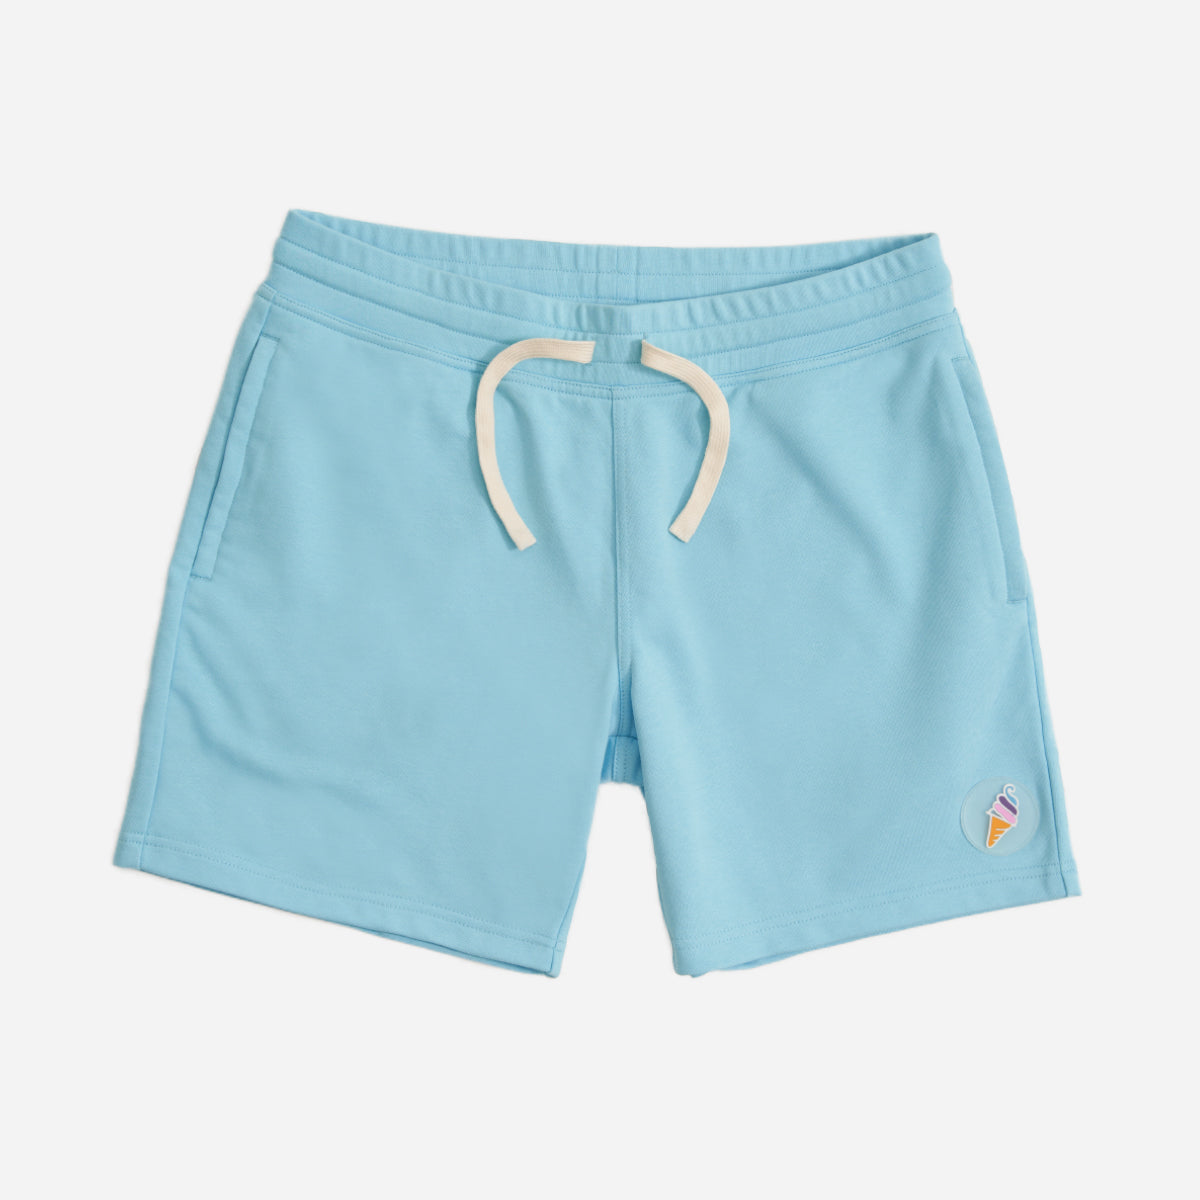 "7"" Soft Serve Lounge Shorts"